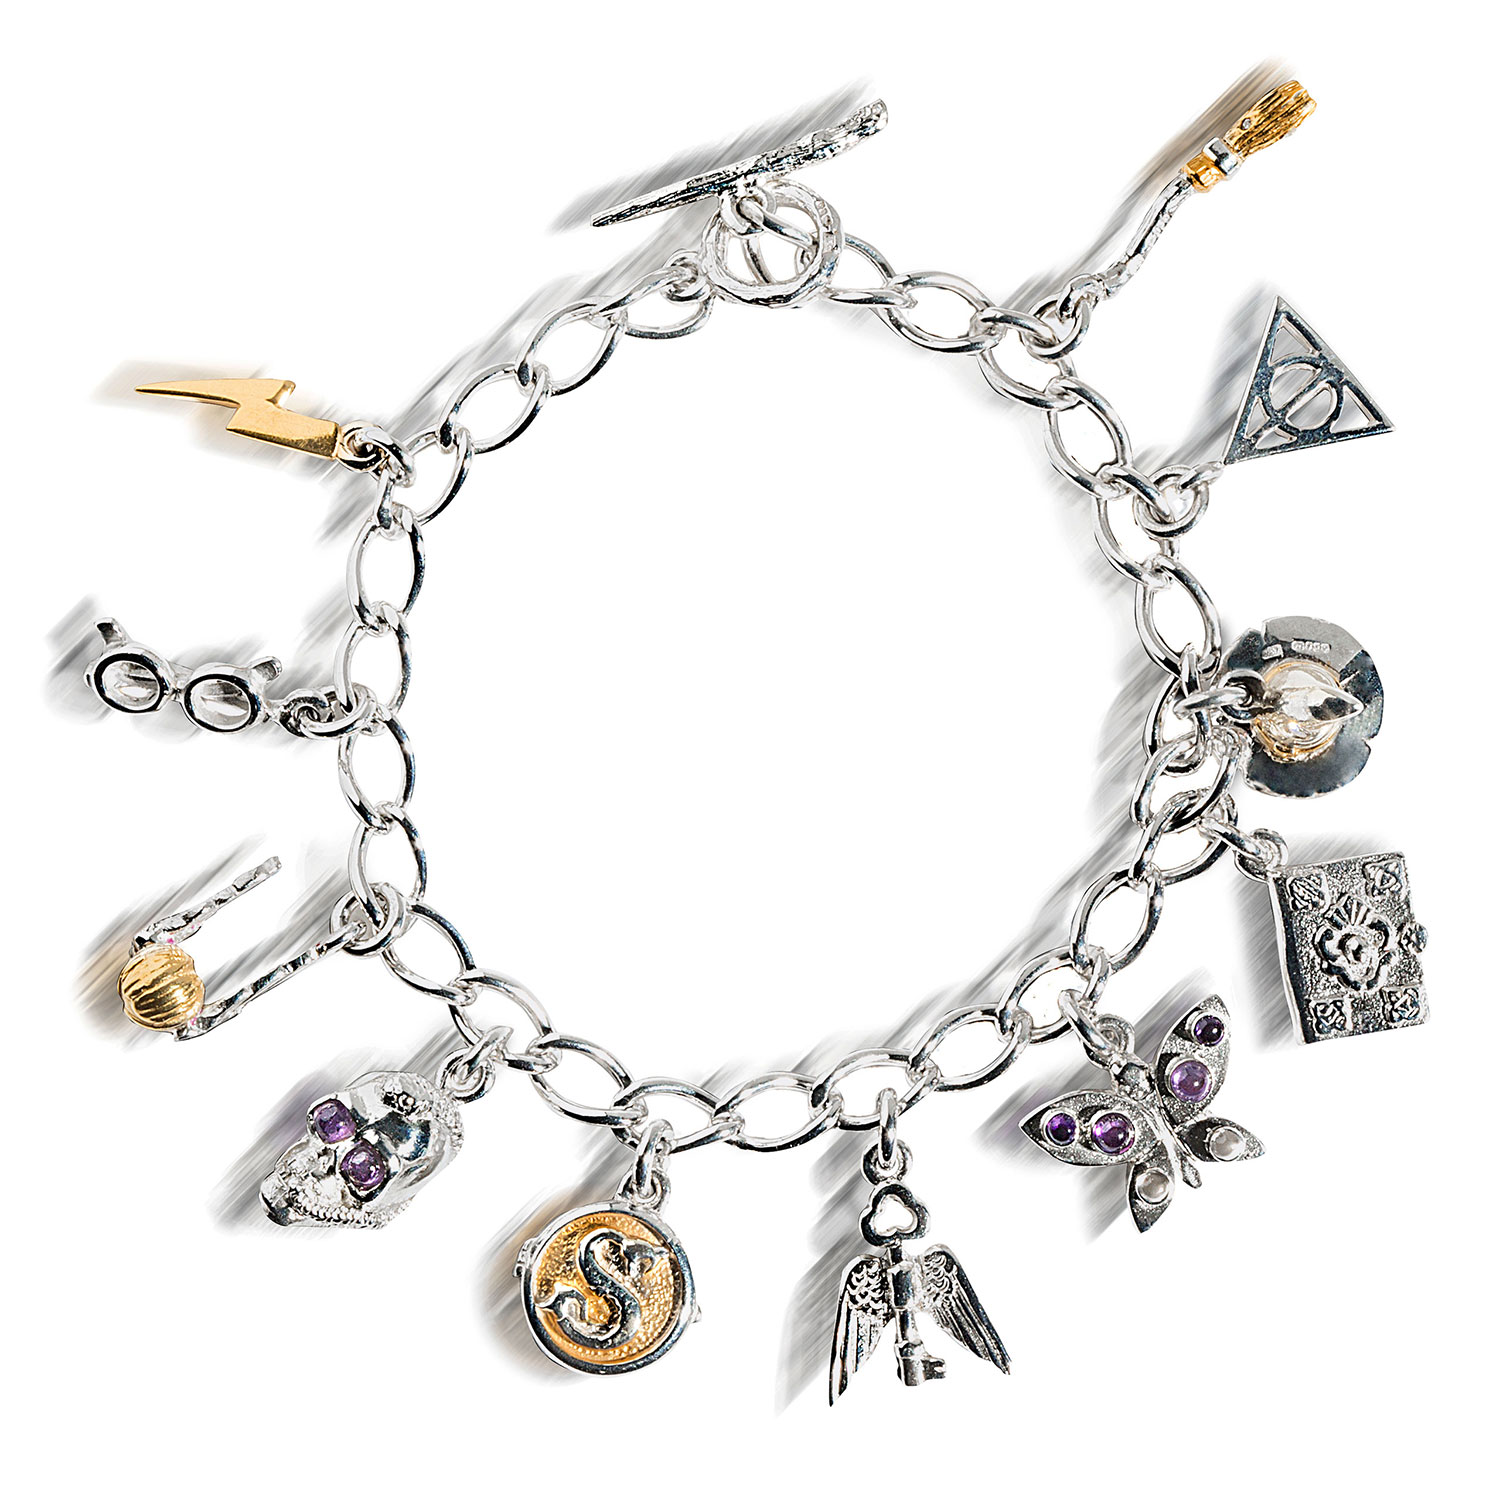 dating charm bracelet story Buy european charm bracelet charms and beads for women and girls jewelry, family love hearts: beads & bead assortments - amazoncom free delivery possible on eligible purchases.